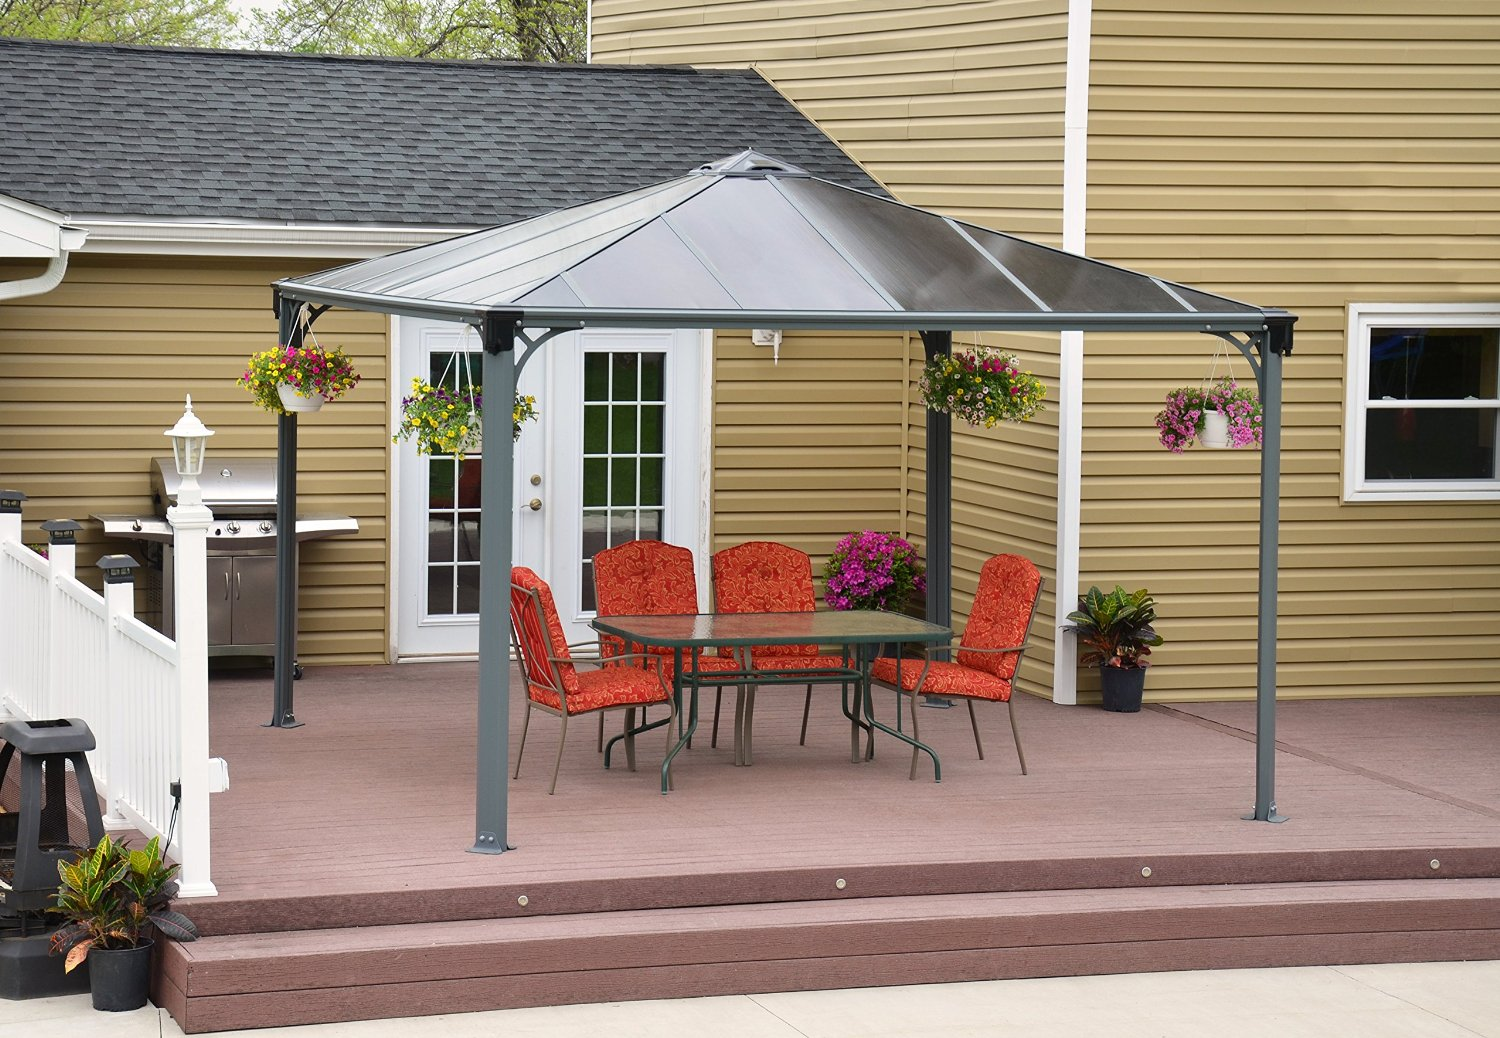 Brand new Hardtop Gazebos: Best 2018 Choices, Sorted by Size QC22